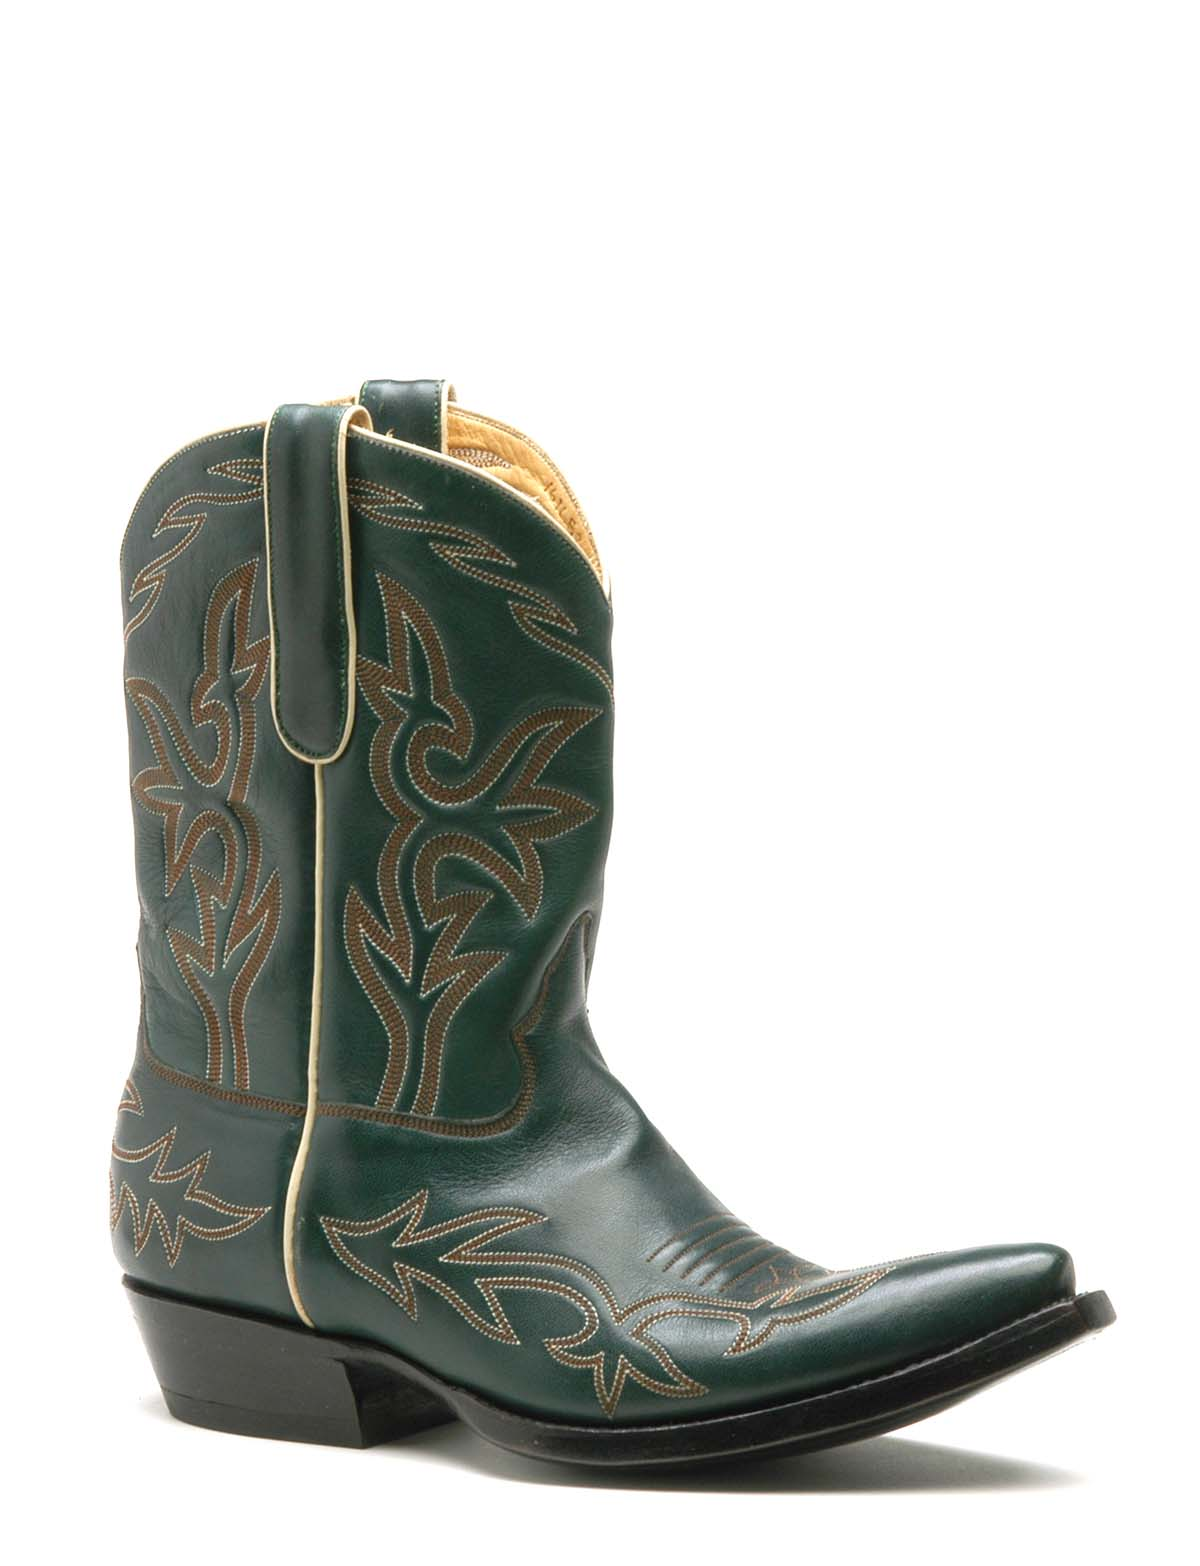 Green Cowboy Boots nLdgw8Hy